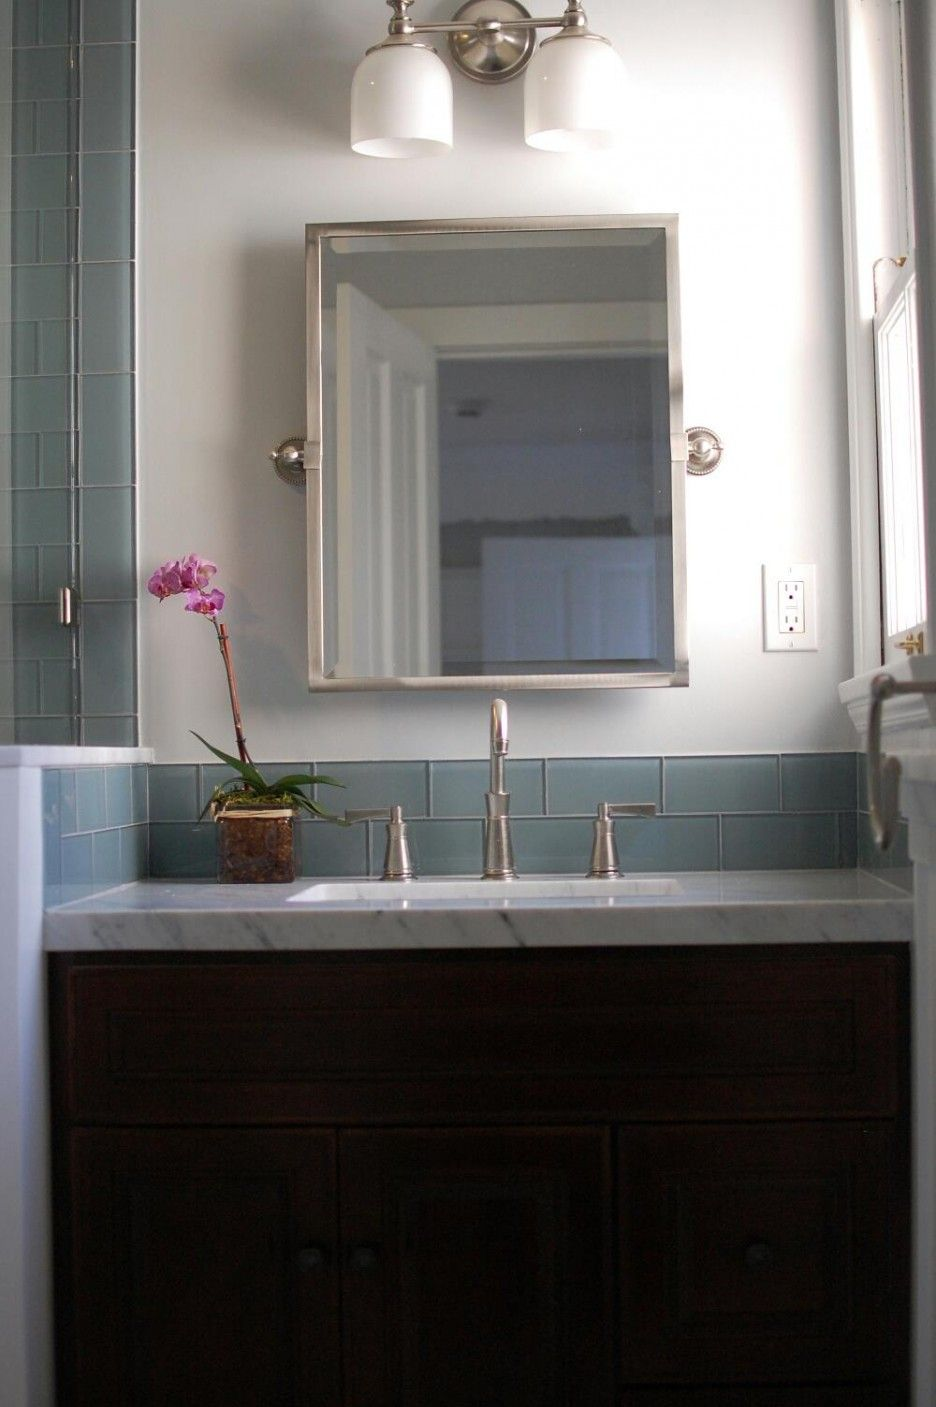 Home accessories alluring glass tile back splash in bathroom with alluring glass tile back splash in bathroom with gray ocean subway tiles combined dailygadgetfo Image collections